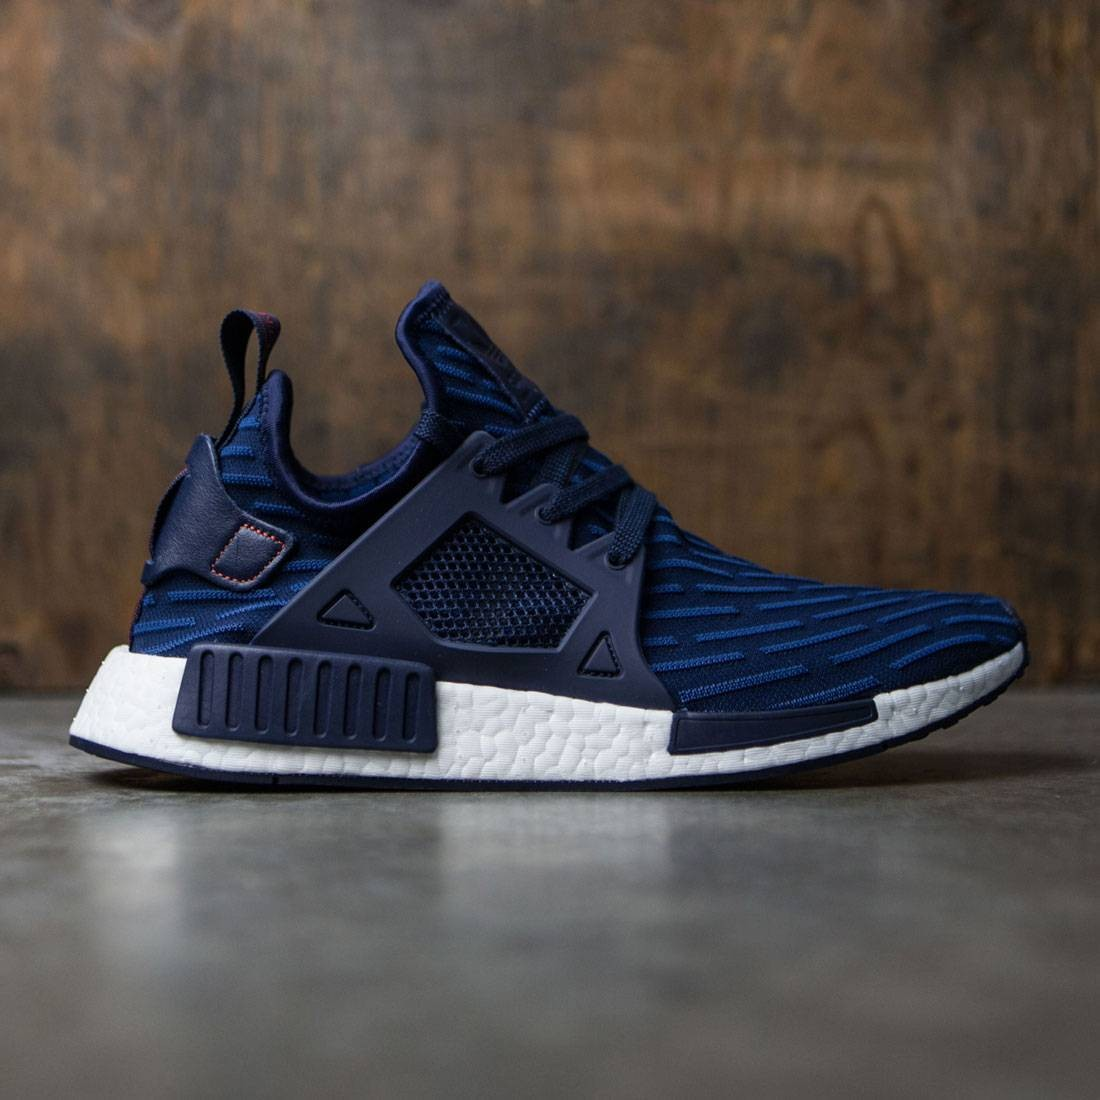 253ddcead Adidas NMD XR1 size 13. Black Grey White Glitch. BY1910. primeknit